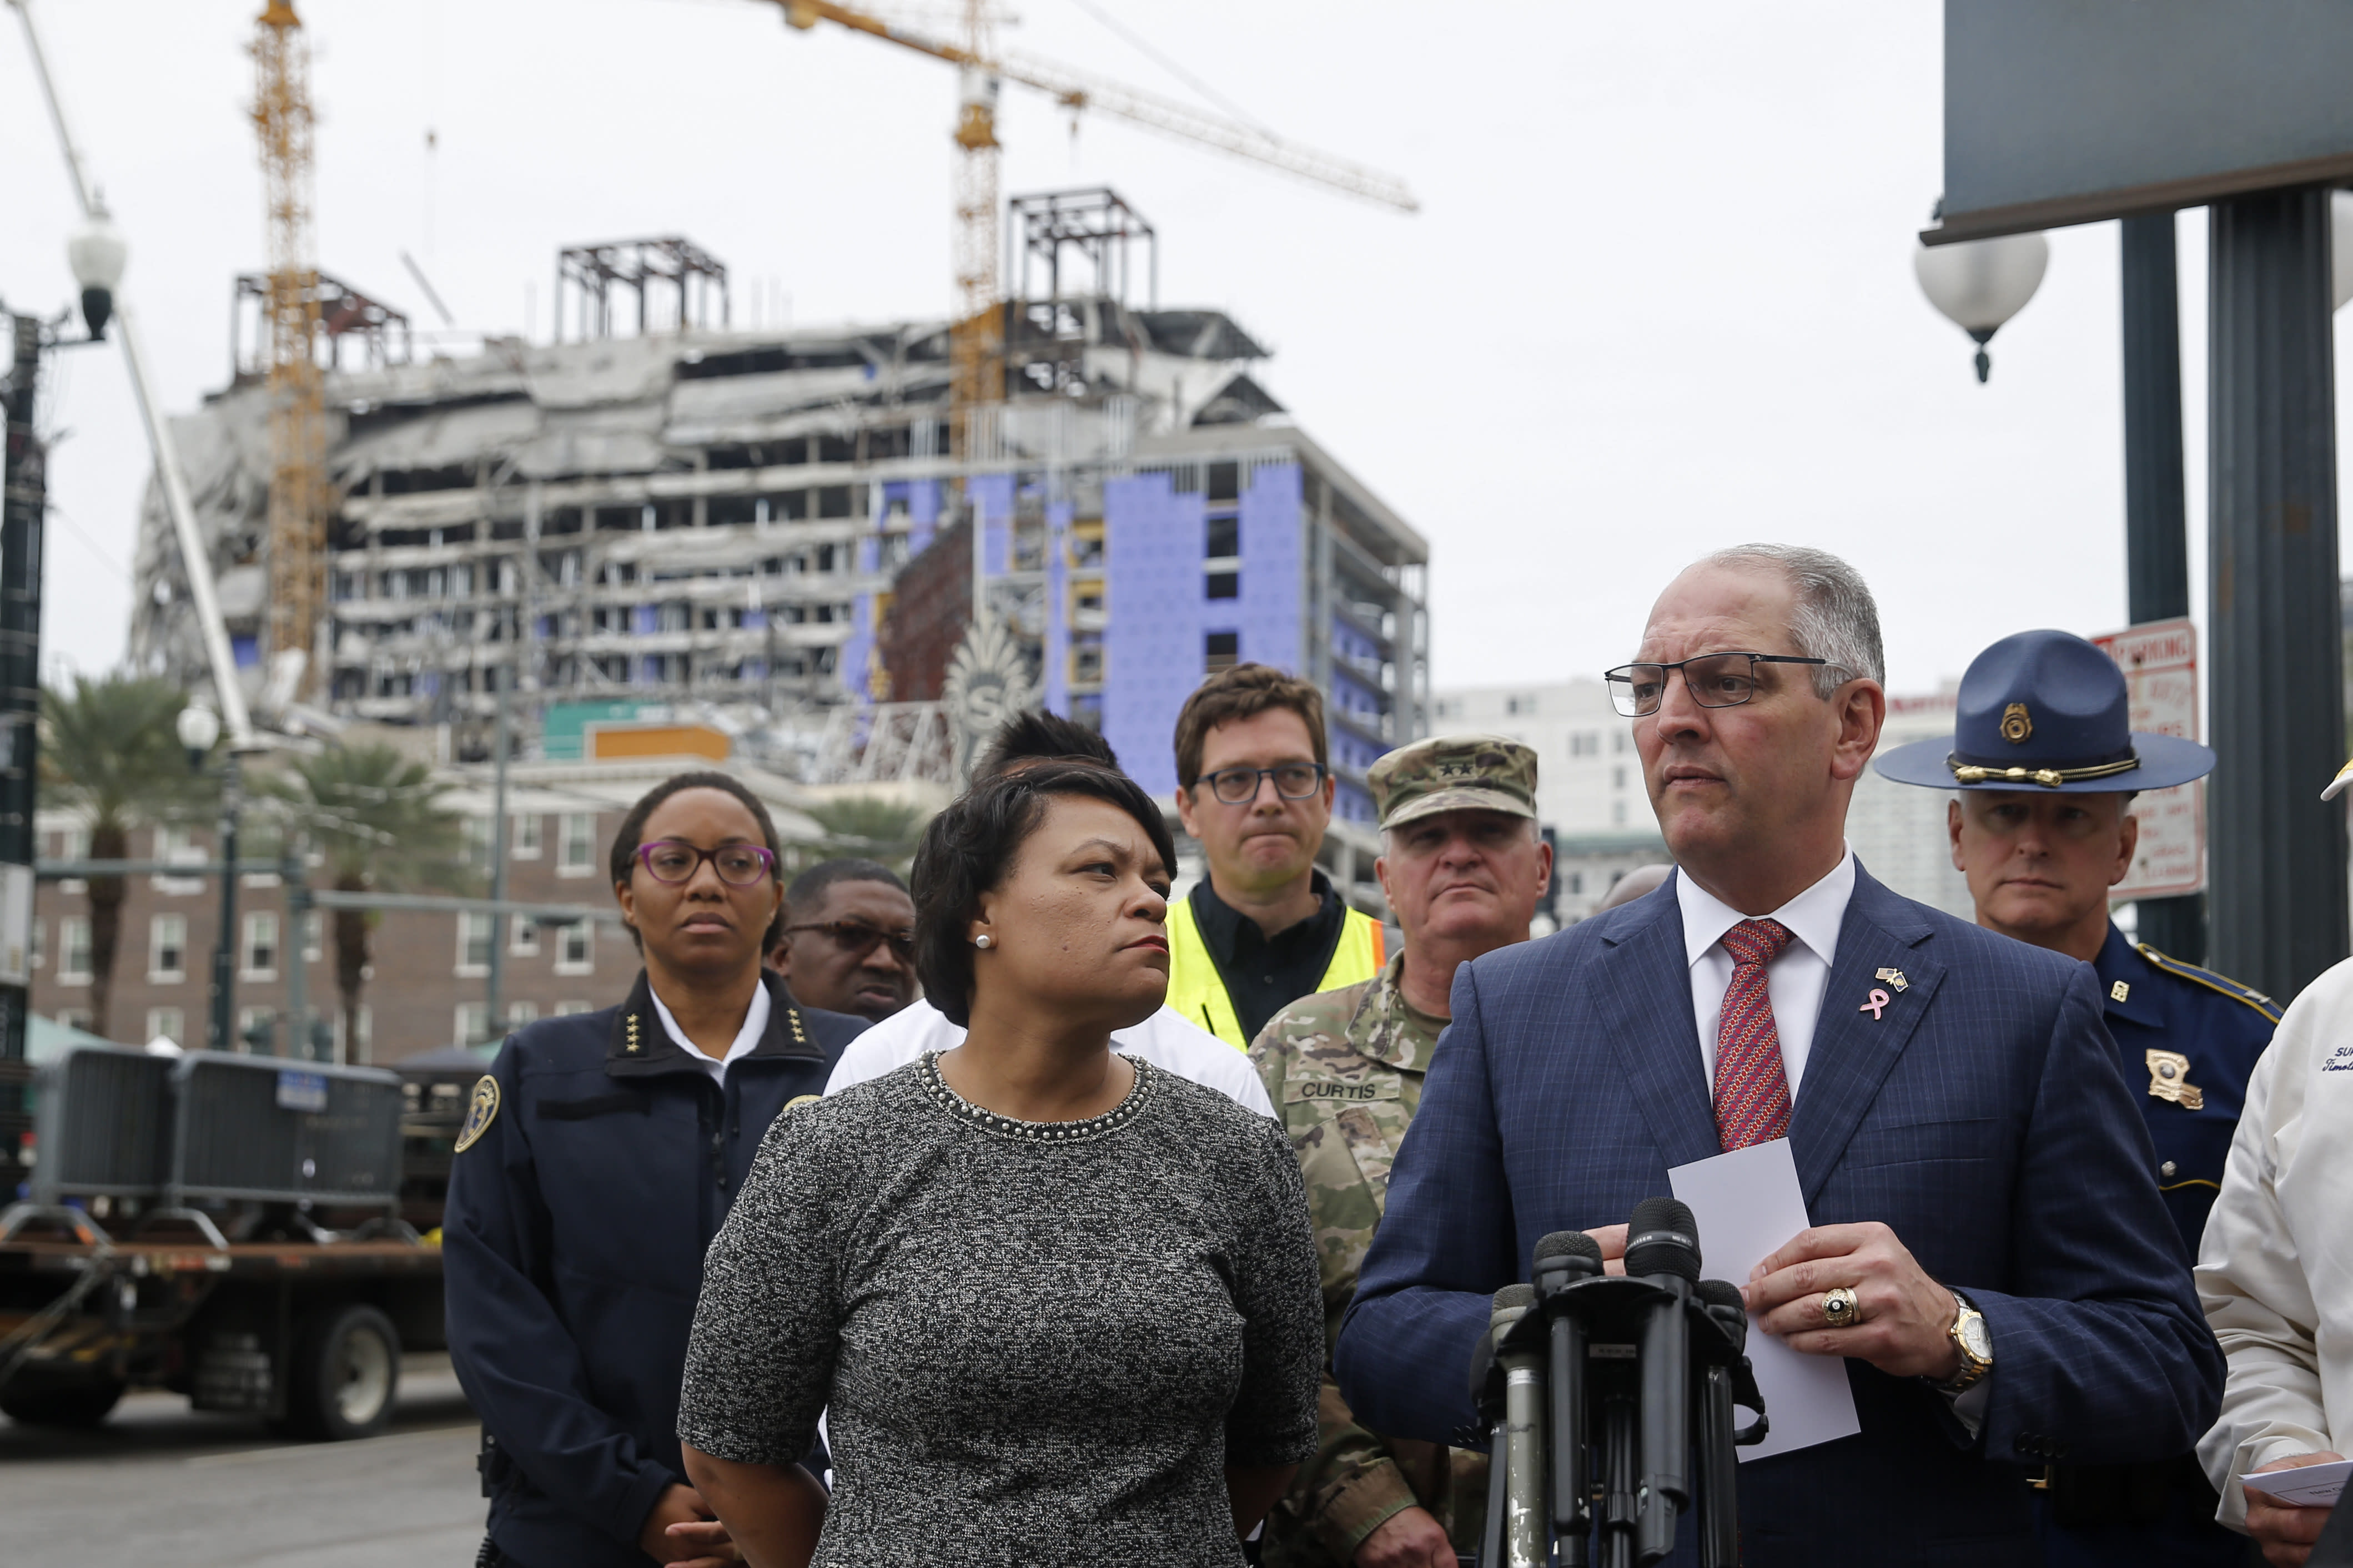 Threat of winds delay demolition of New Orleans cranes